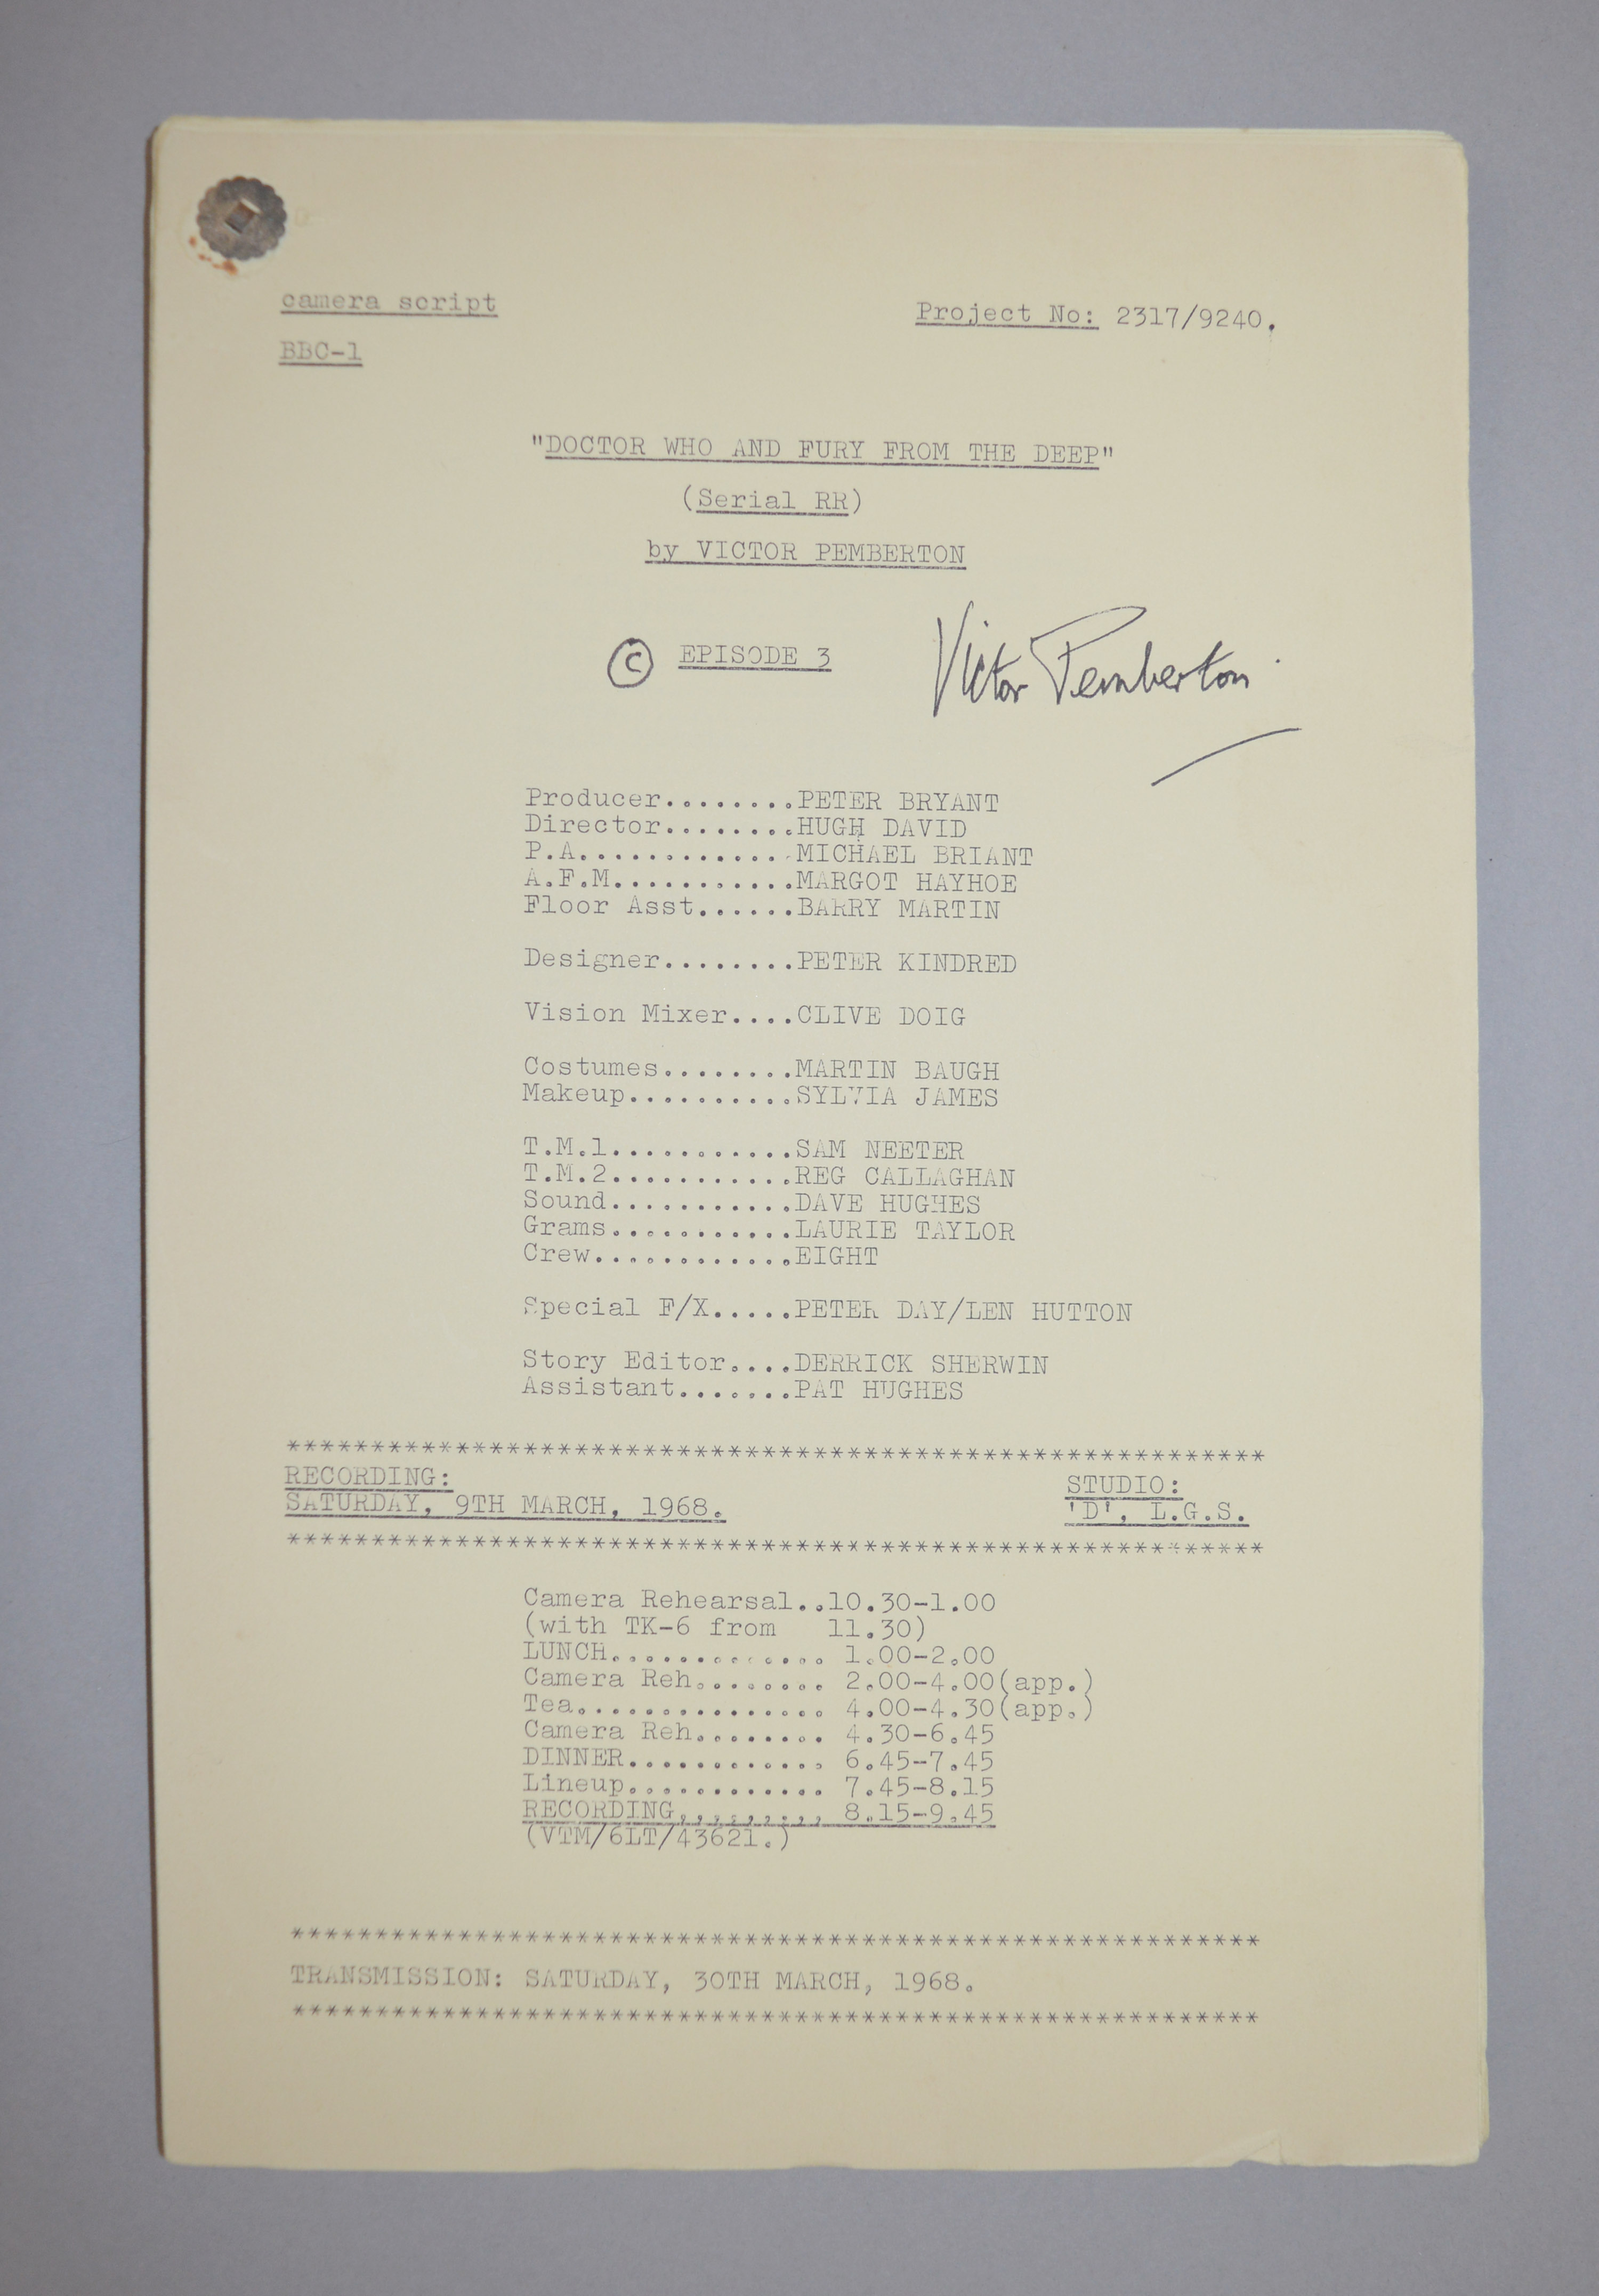 Doctor Who (Dr Who) full set of 6 original camera scripts from the missing 1968 Dr Who episode - - Image 16 of 17